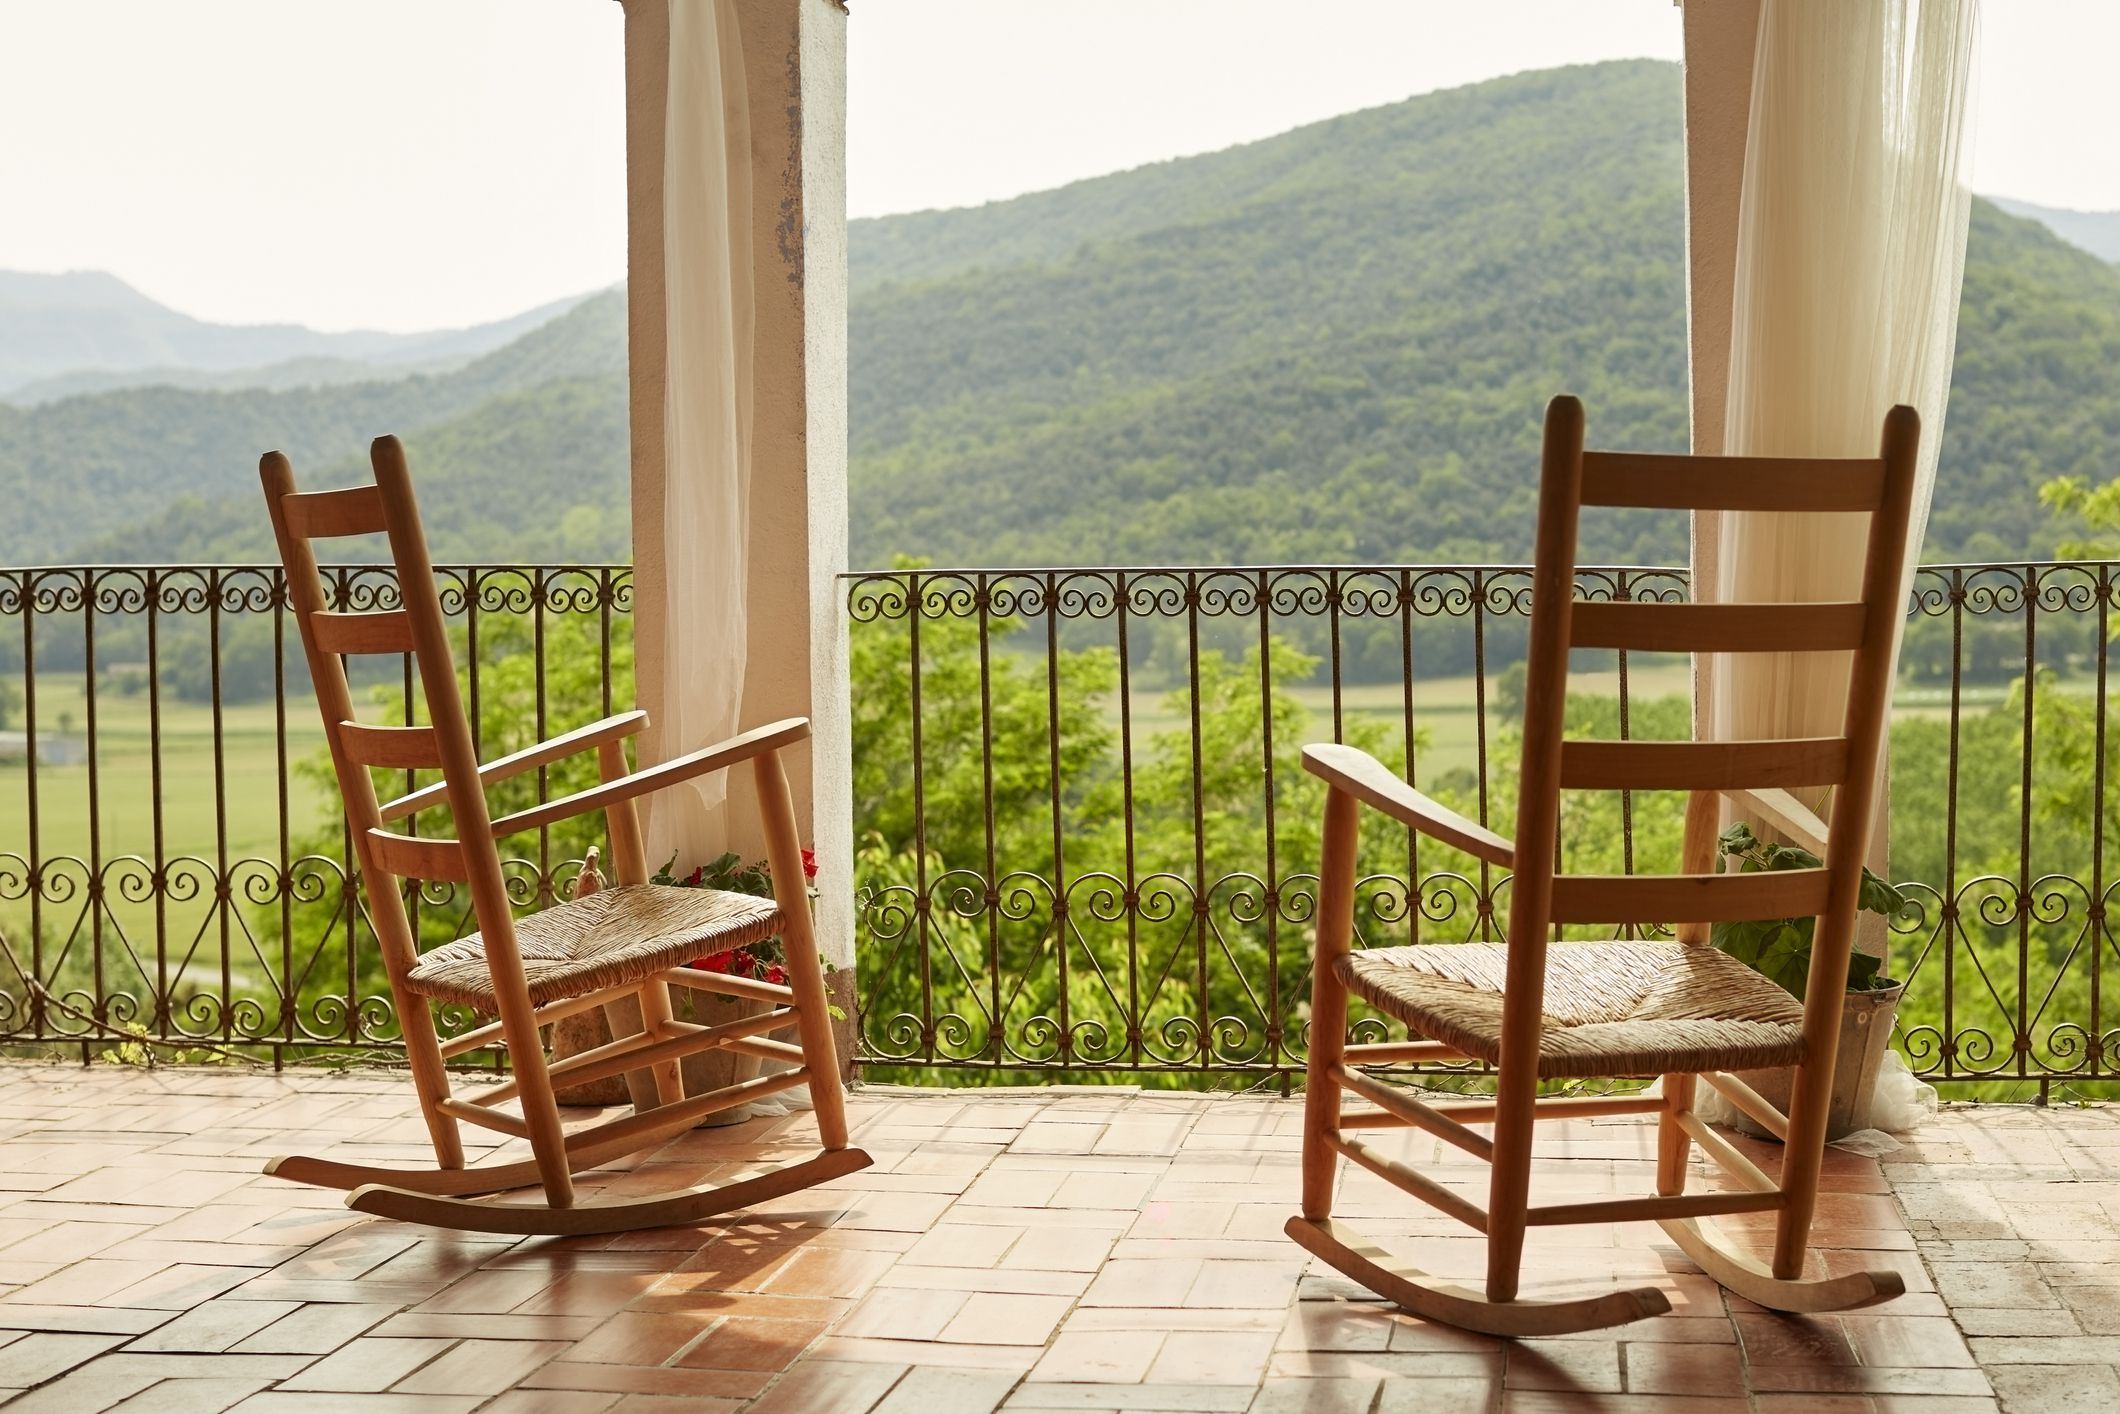 The 7 Best Rocking Chairs Of 2020 With Rocking Love Seats Glider Swing Benches With Sturdy Frame (View 13 of 25)